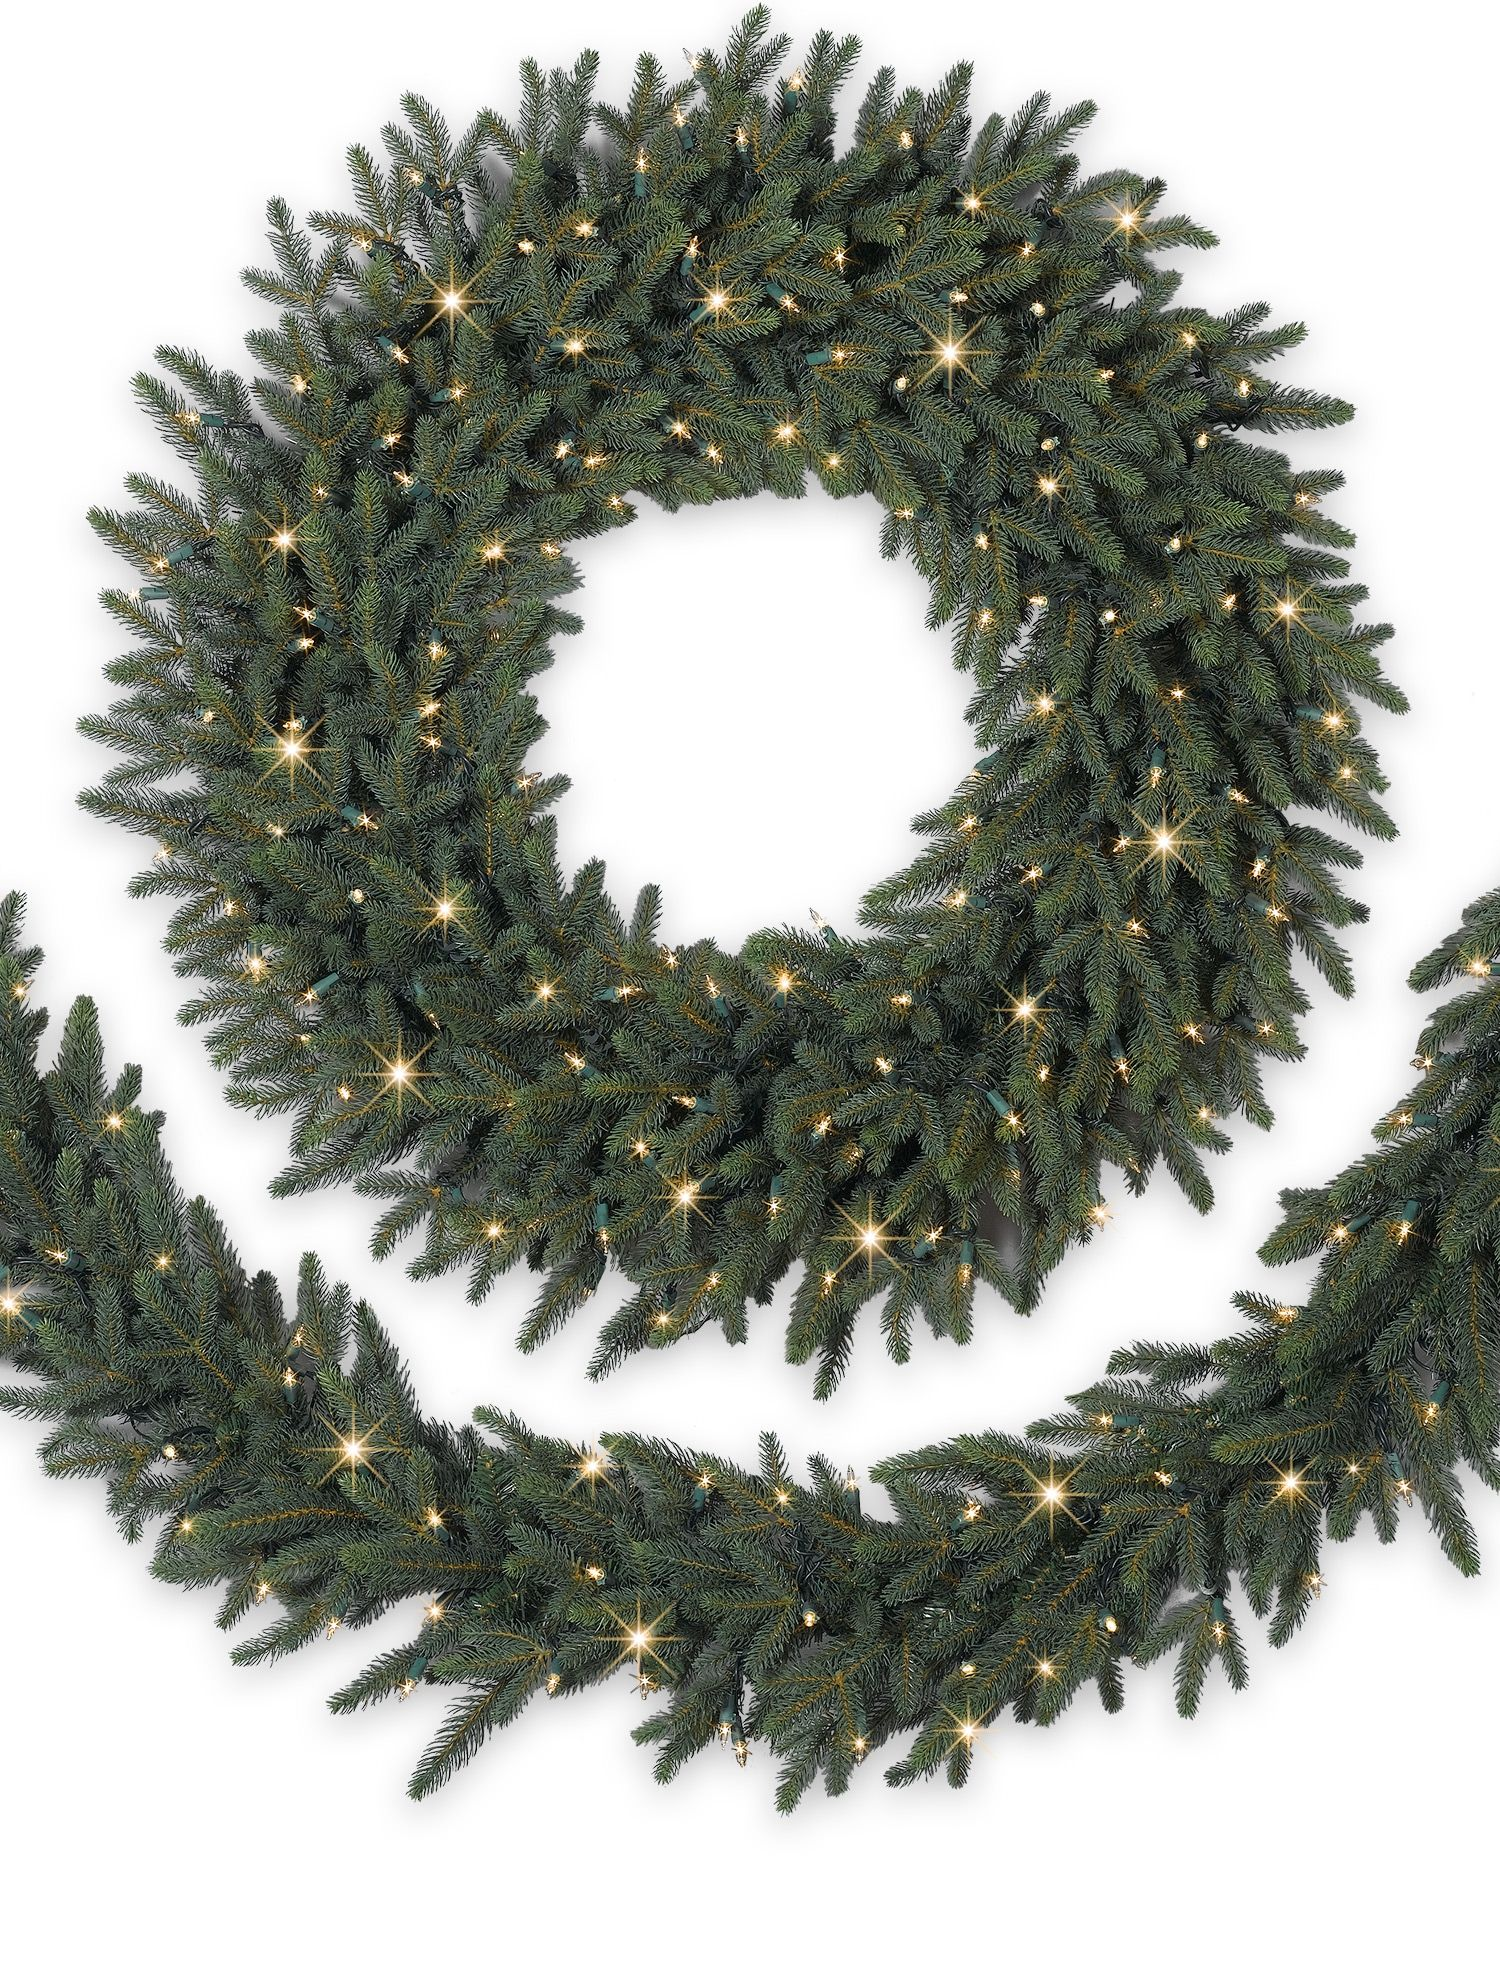 Colorado Mountain Spruce Christmas Wreath and Garland